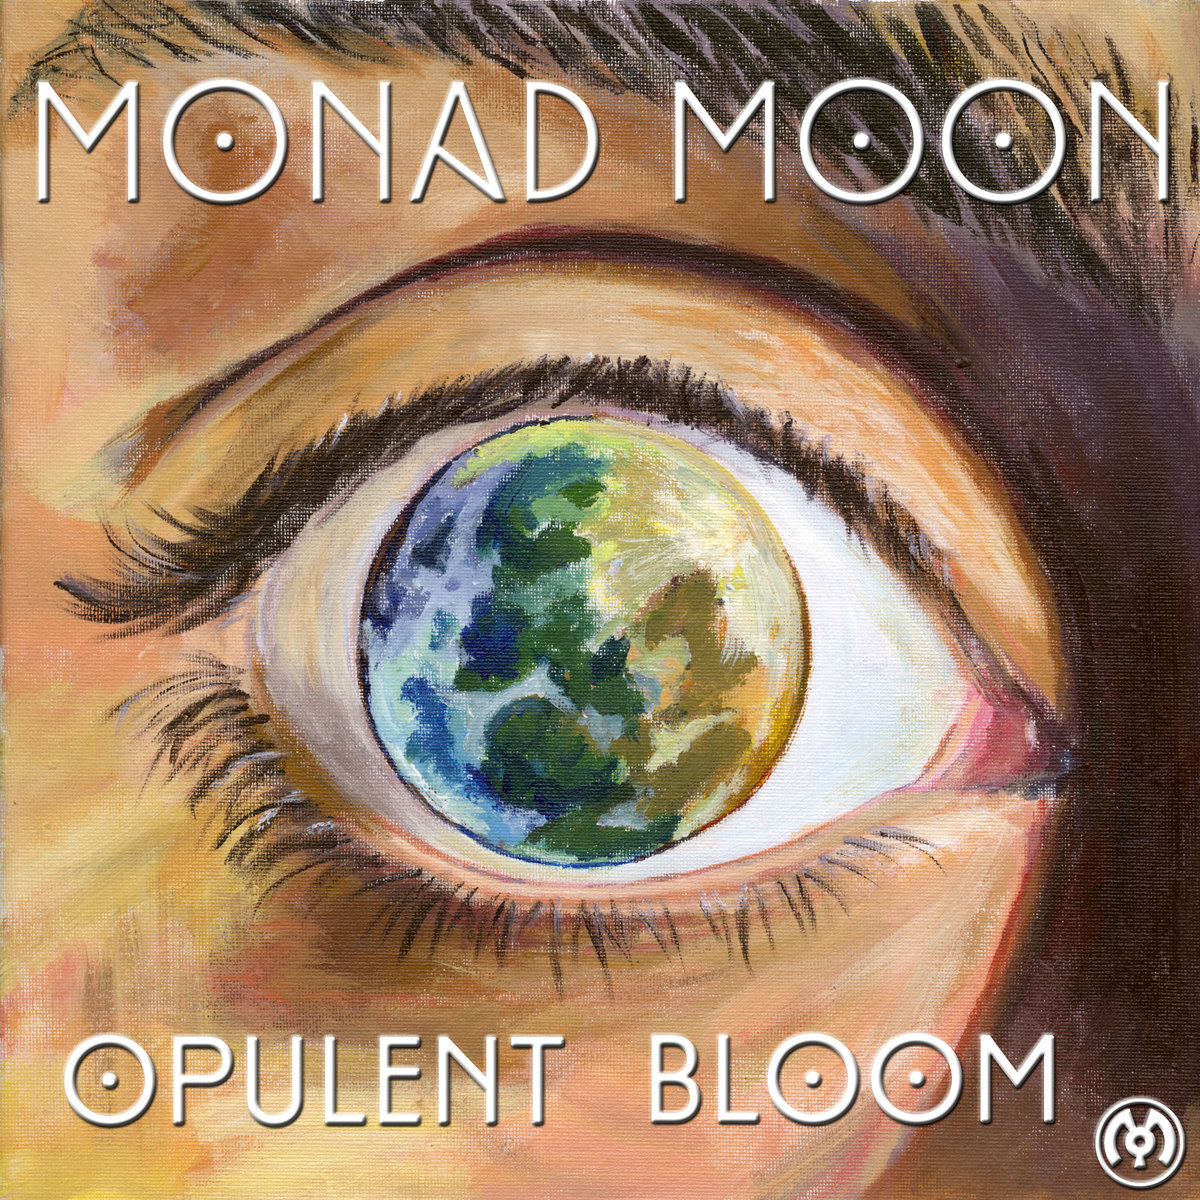 Monad Moon - The Bear And The Owl @ 'Opulent Bloom' album (electronic, dubstep)